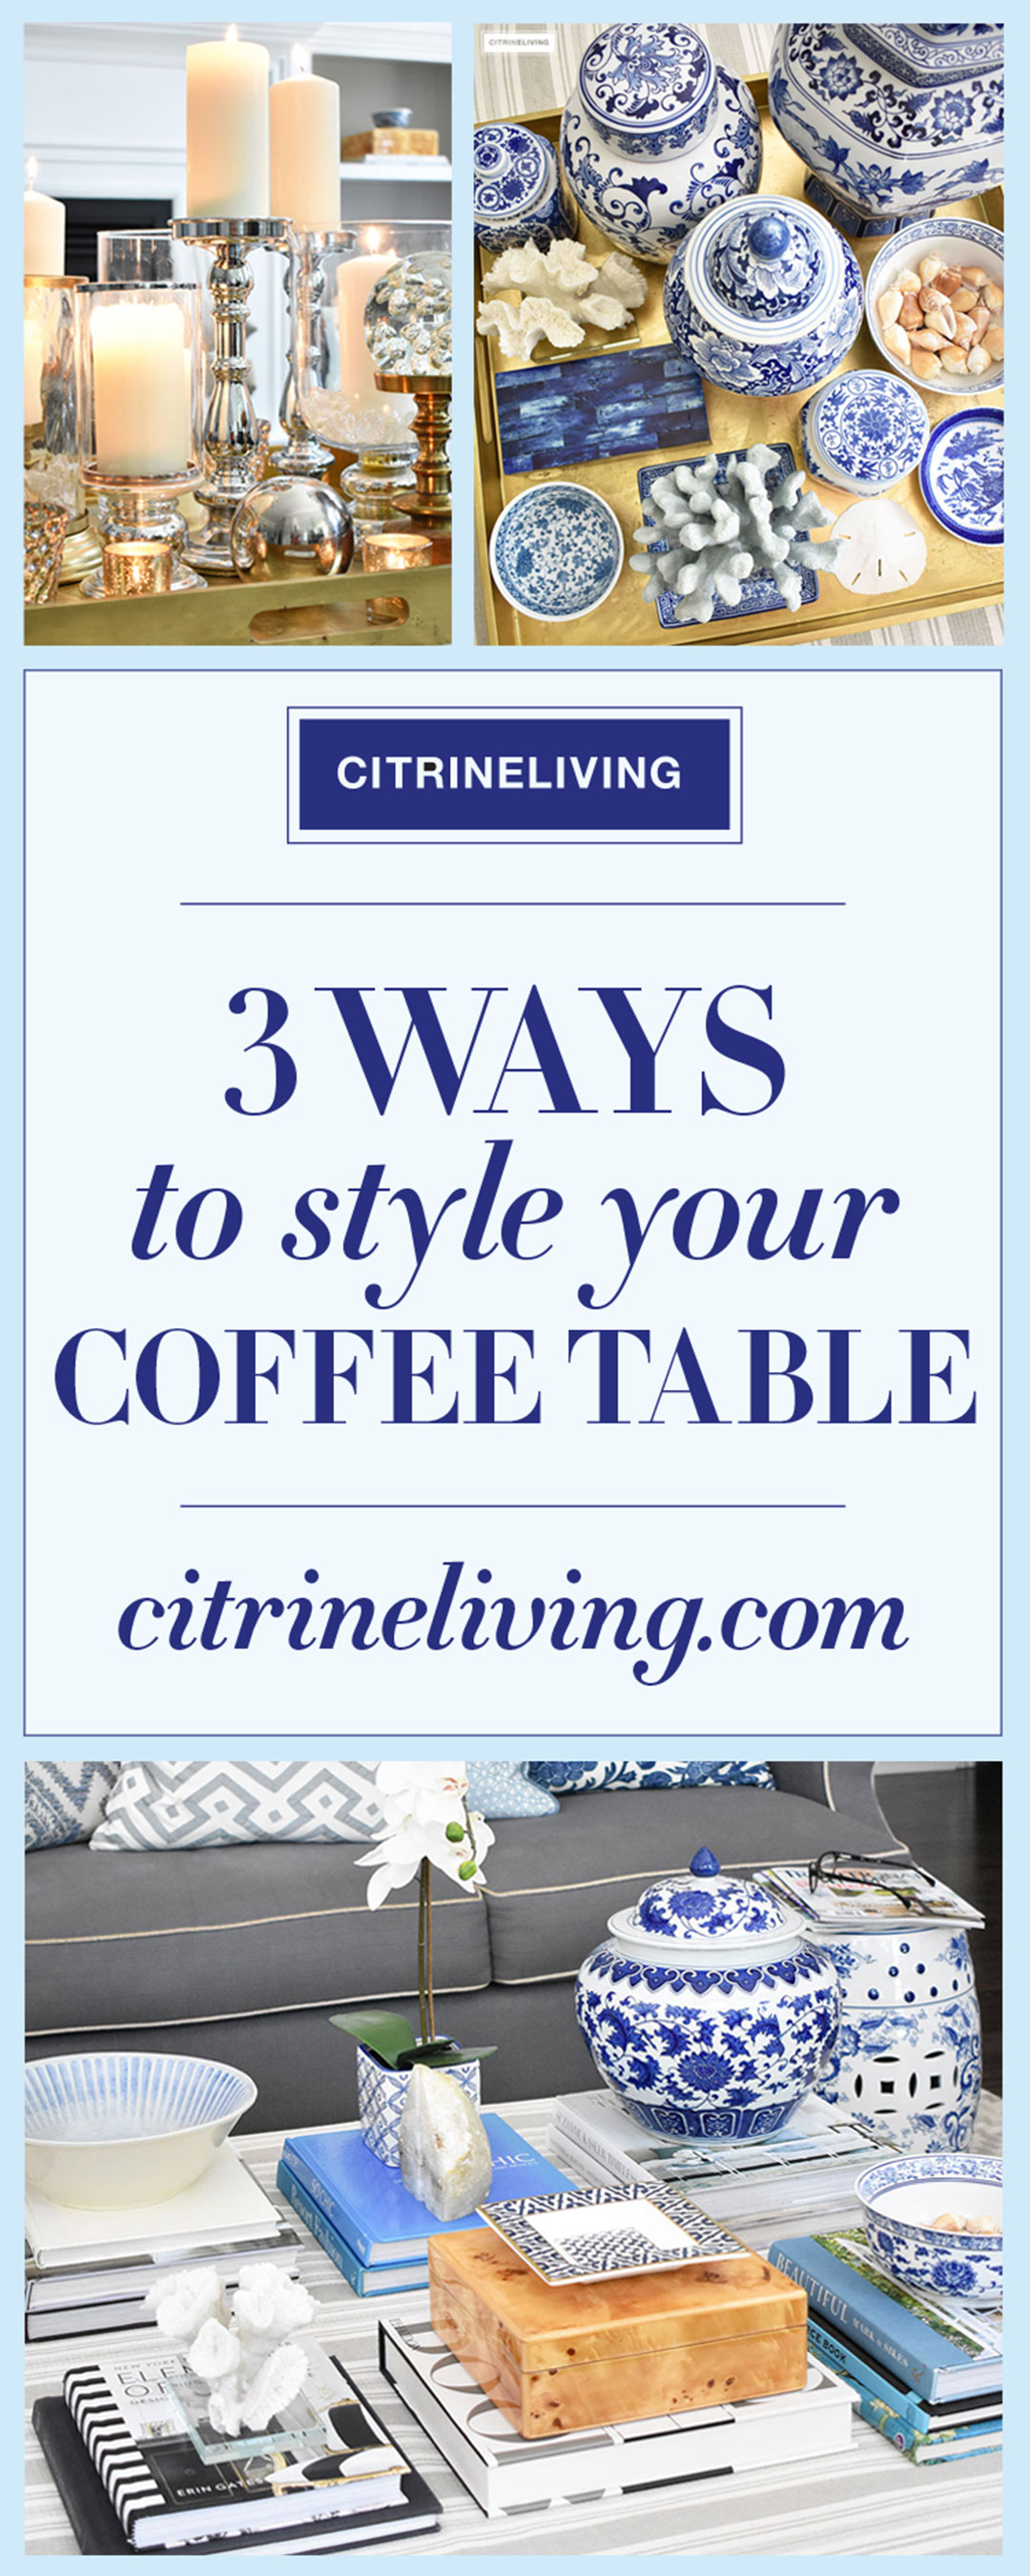 Style your coffee table with confidence! Use these style tips to create beautiful displays in your home that make a statement!